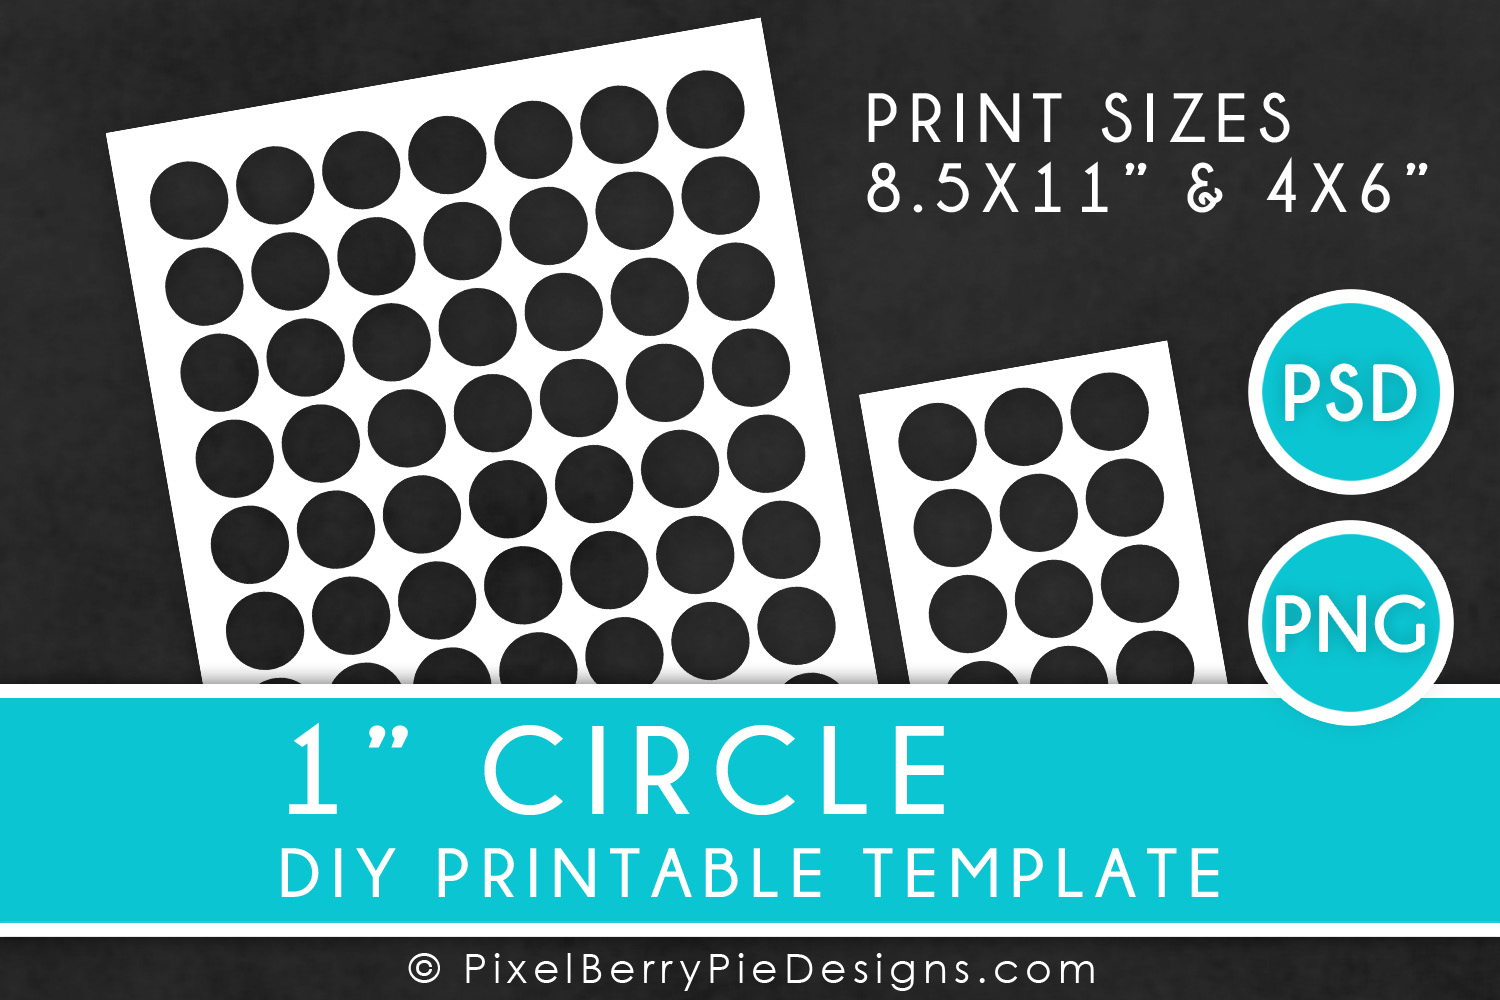 Download Free Print Templates Page 14 Creative Fabrica for Cricut Explore, Silhouette and other cutting machines.